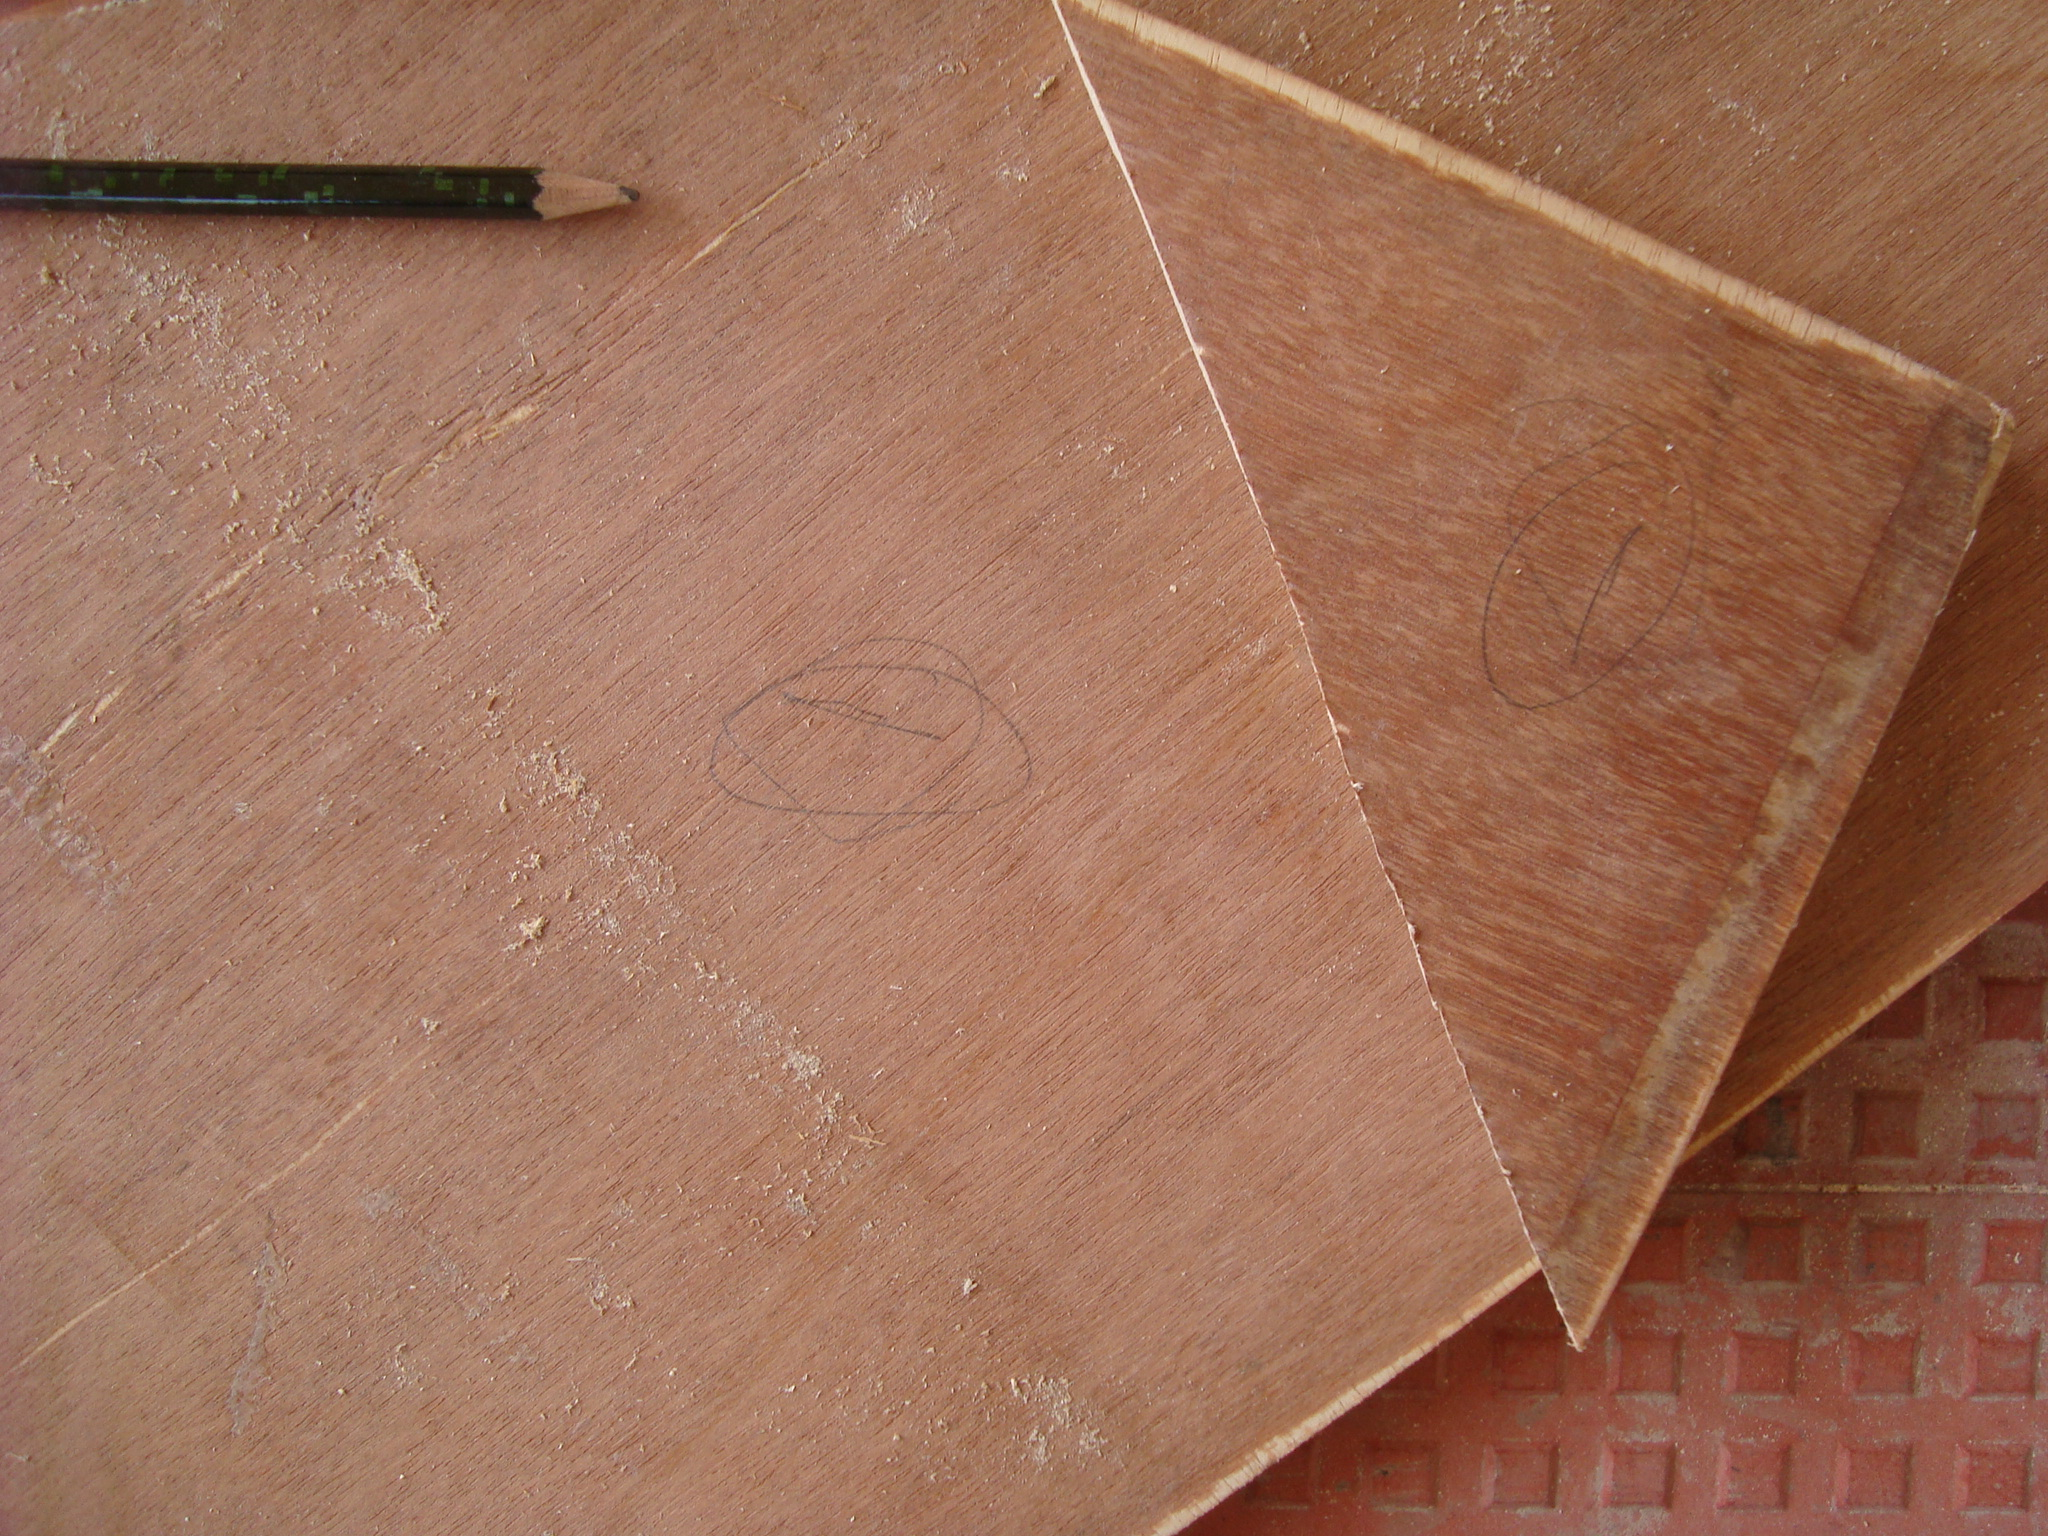 Picture of Cutting the Triangular and Small Pieces